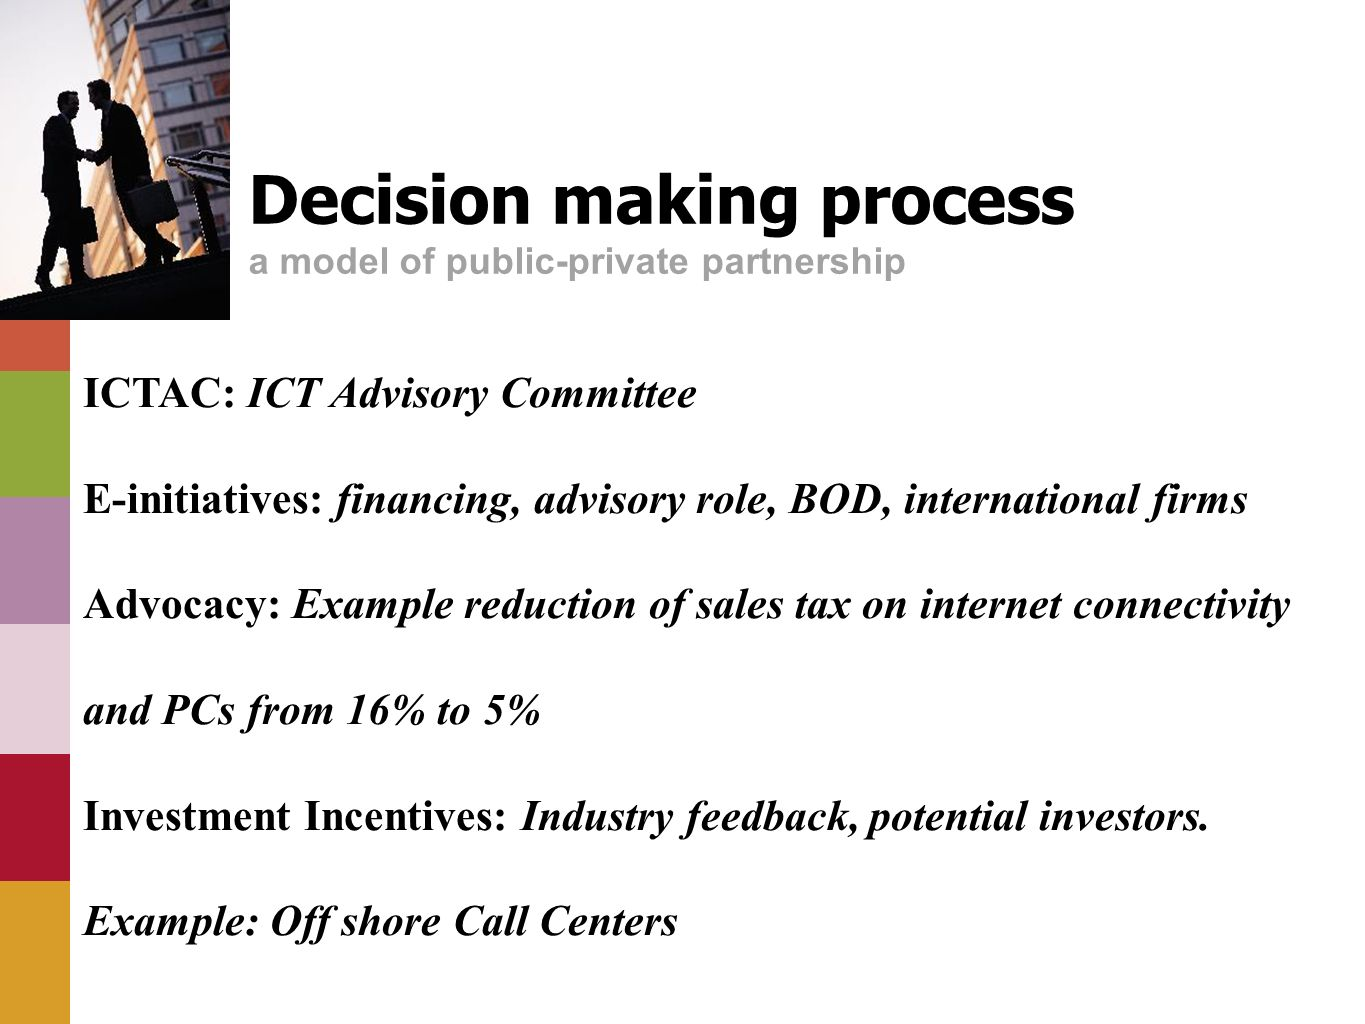 Decision making process a model of public-private partnership ICTAC: ICT Advisory Committee E-initiatives: financing, advisory role, BOD, international firms Advocacy: Example reduction of sales tax on internet connectivity and PCs from 16% to 5% Investment Incentives: Industry feedback, potential investors.